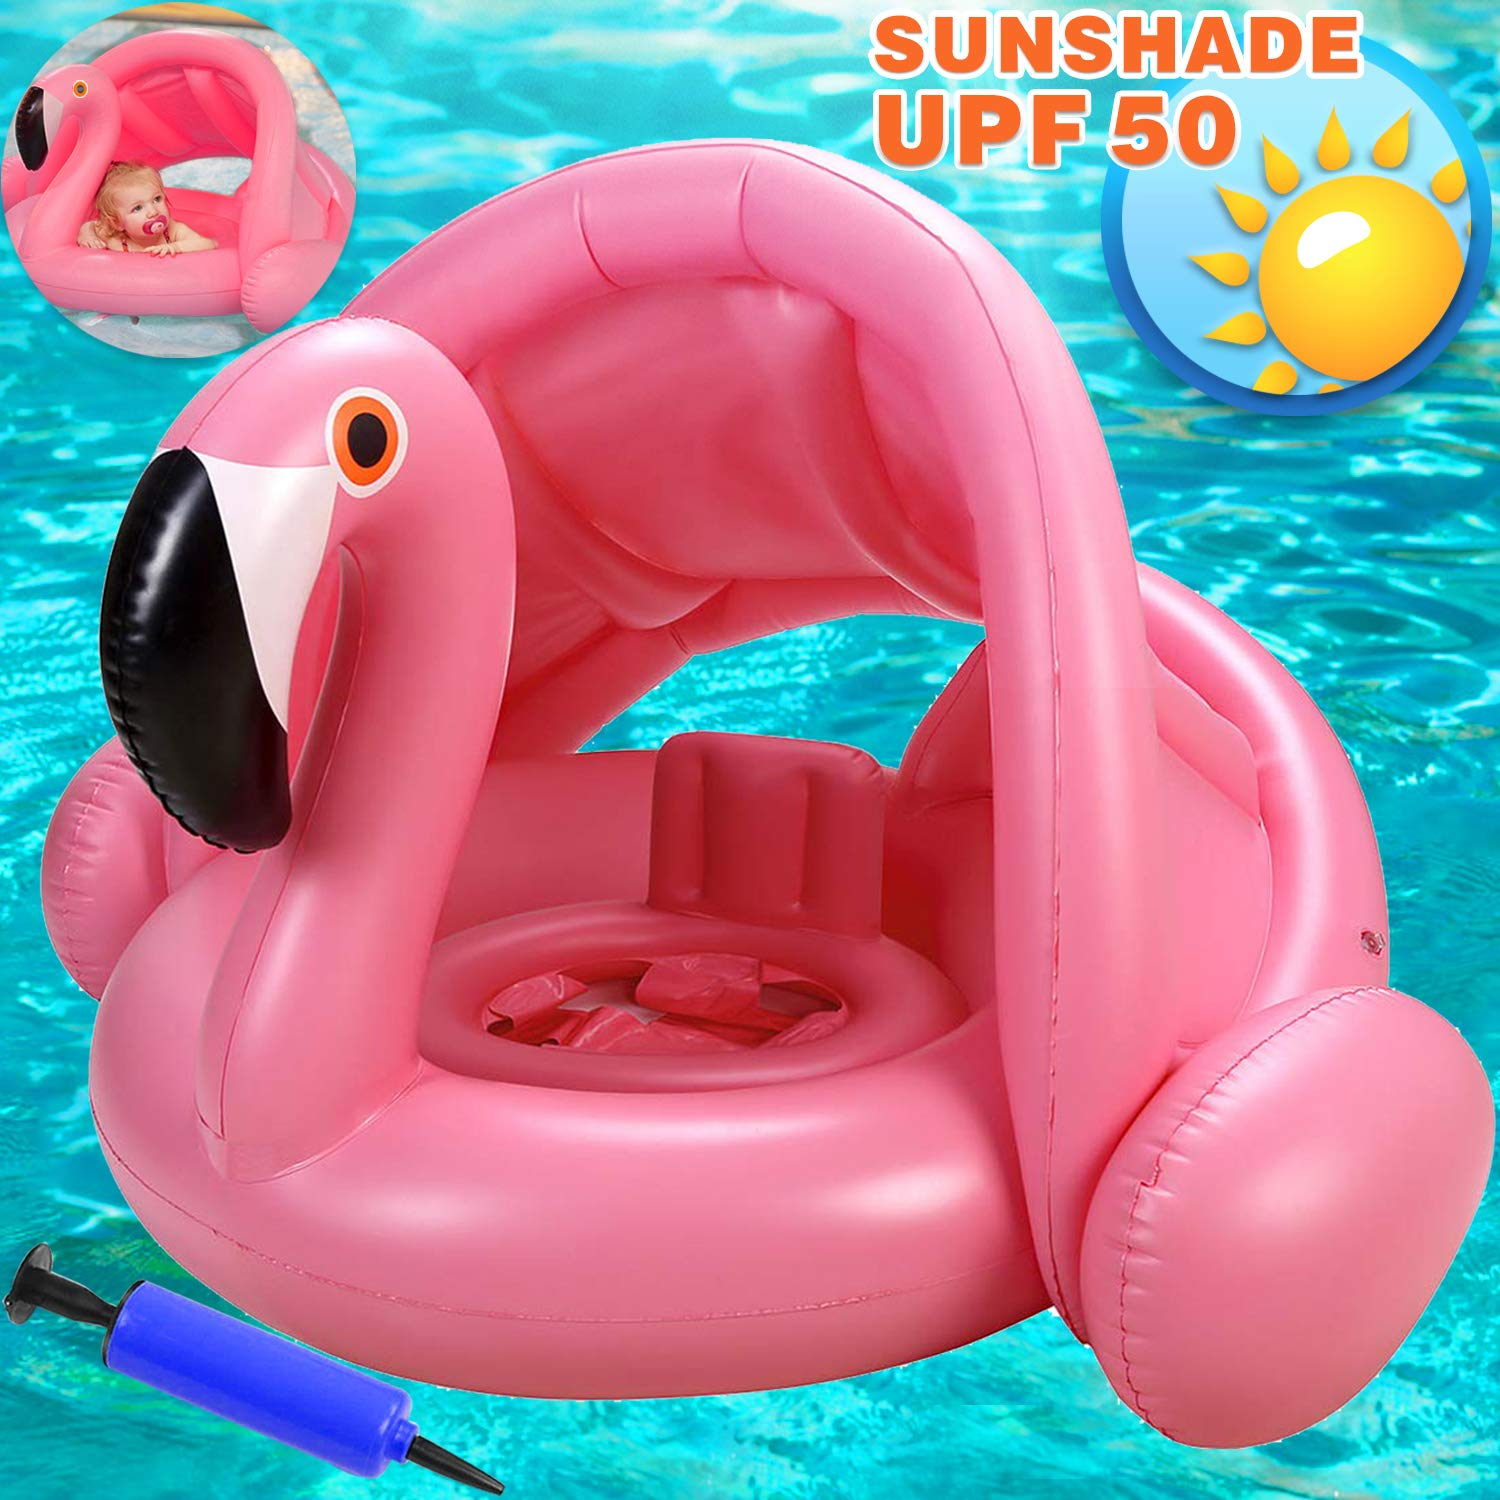 Flamingo Baby Swimming Ring with Canopy-Inflatable Baby Swimming Pool Float Sunshade for Infant Kids Boys Girls Toddlers Age 8-48 Months Up to 40Lbs Summer Outdoor Beach Water Bath Toys